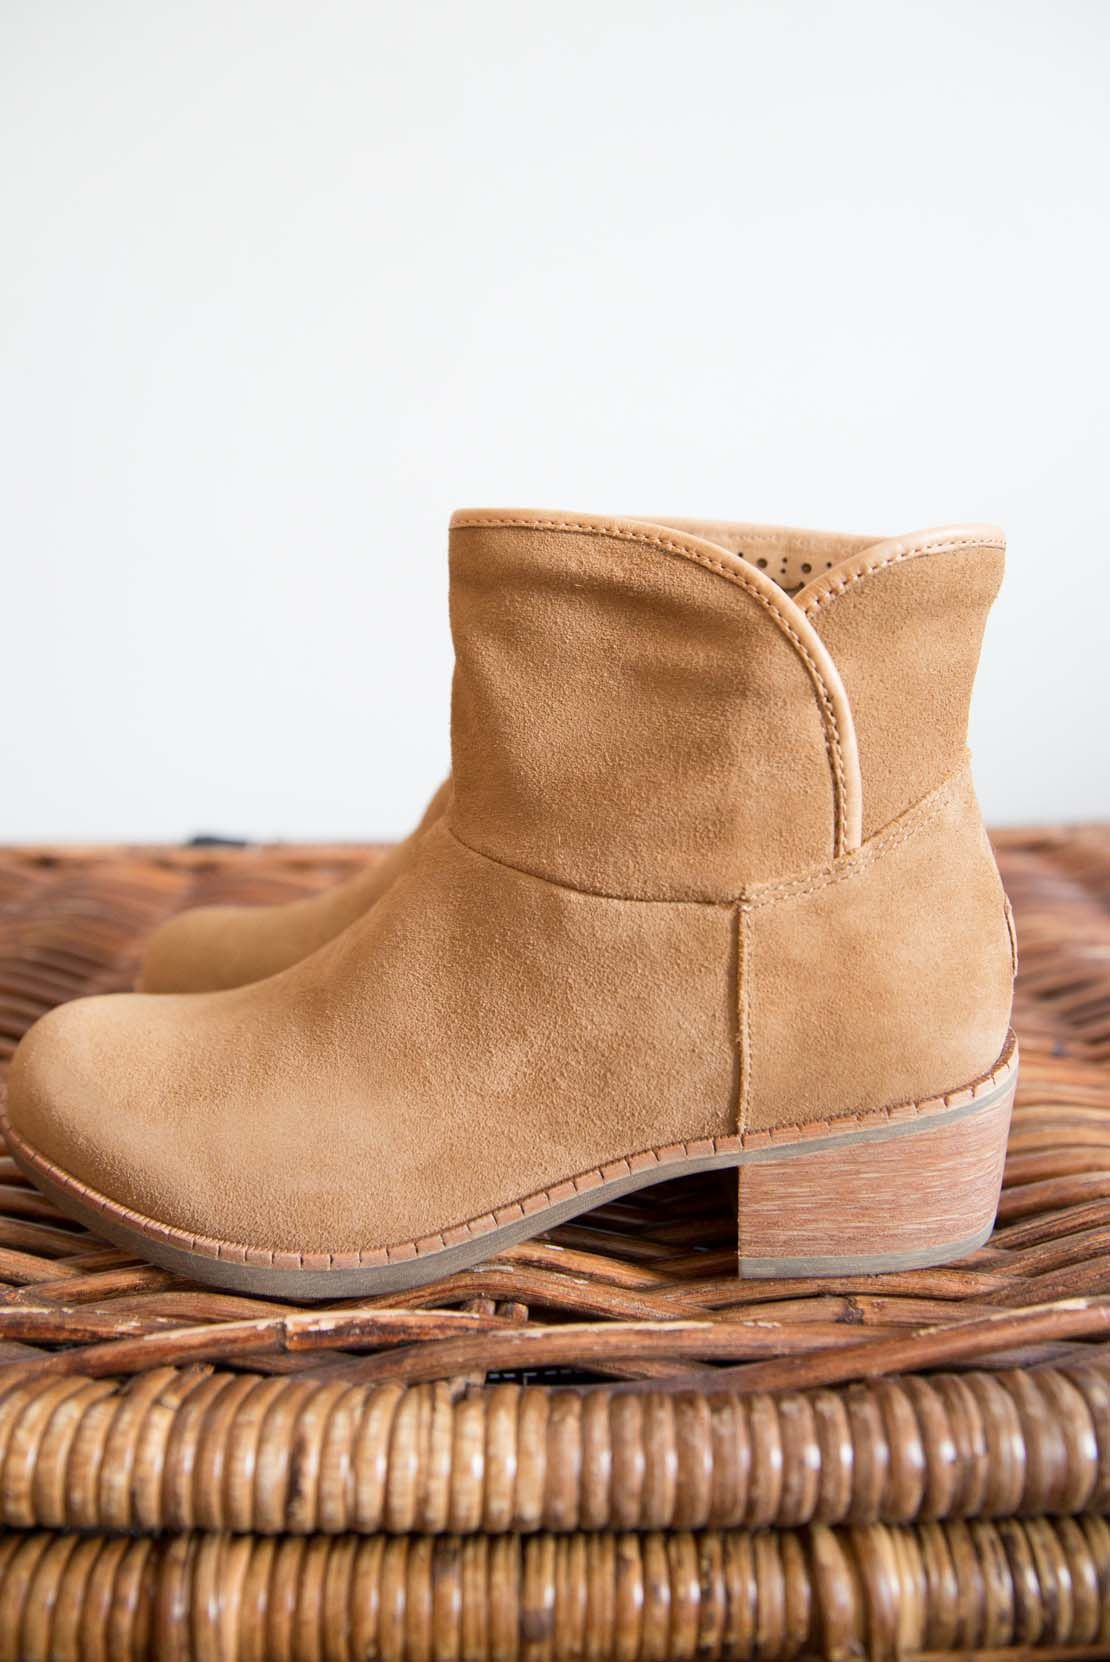 Ugg australia darling boot by ugg | buy ugg online from Inis.